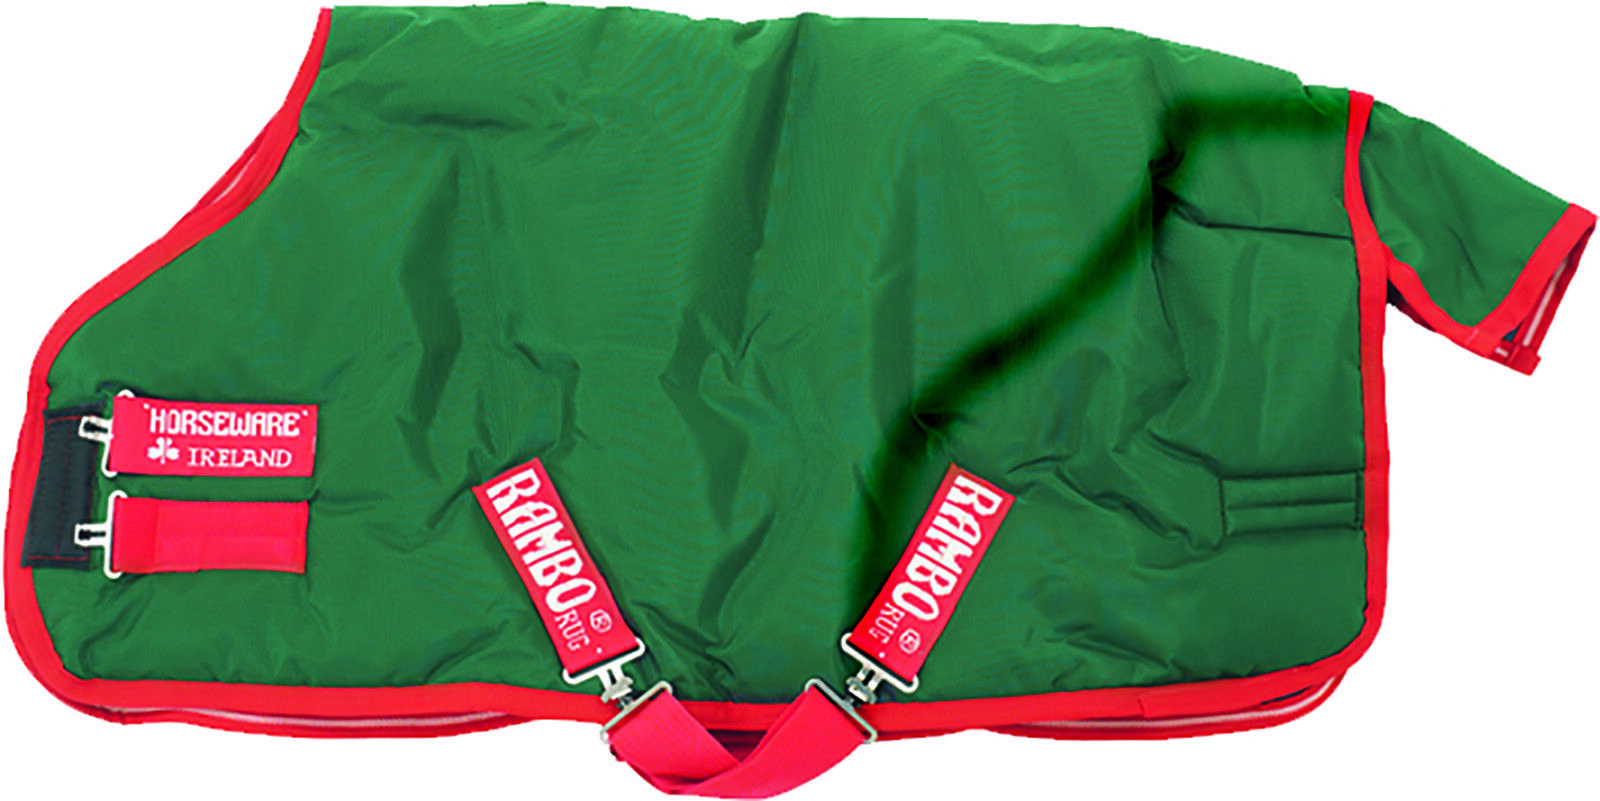 Horseware Ireland Rambo Original Turnout Blanket 0g Fill Lightweight